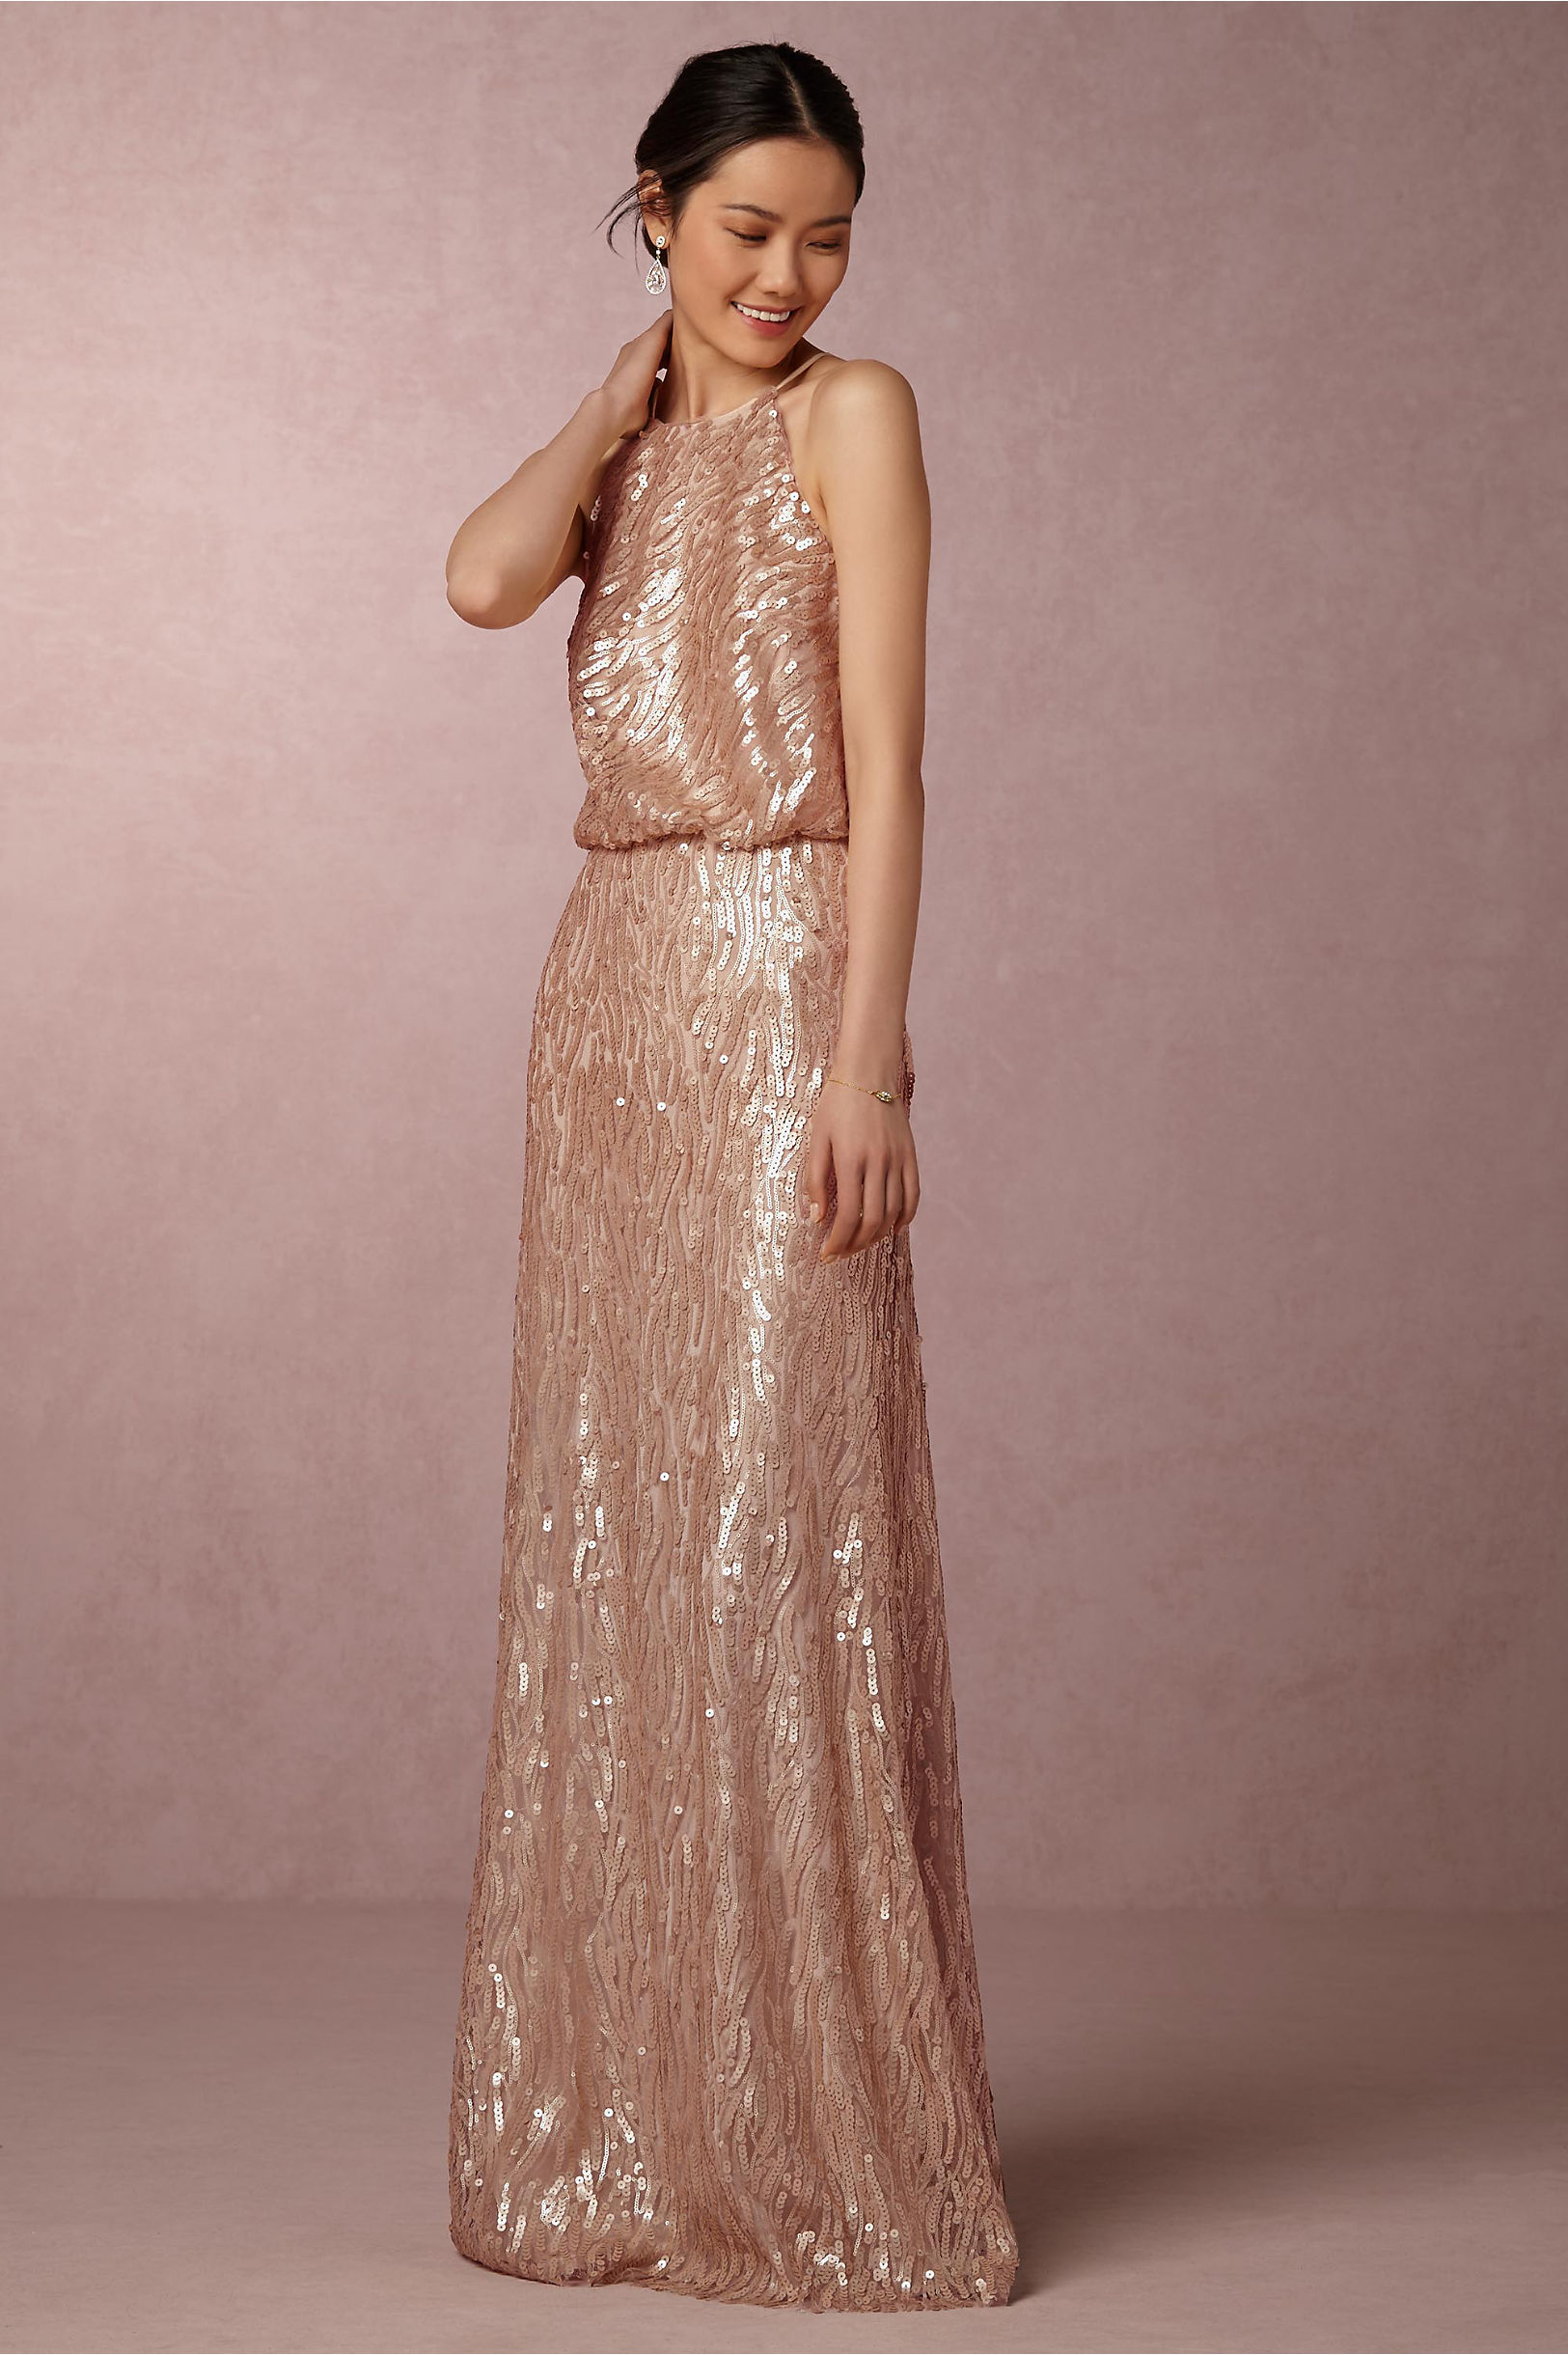 b9eda40222a Luisa Gown in Bride Wedding Dresses at BHLDN t